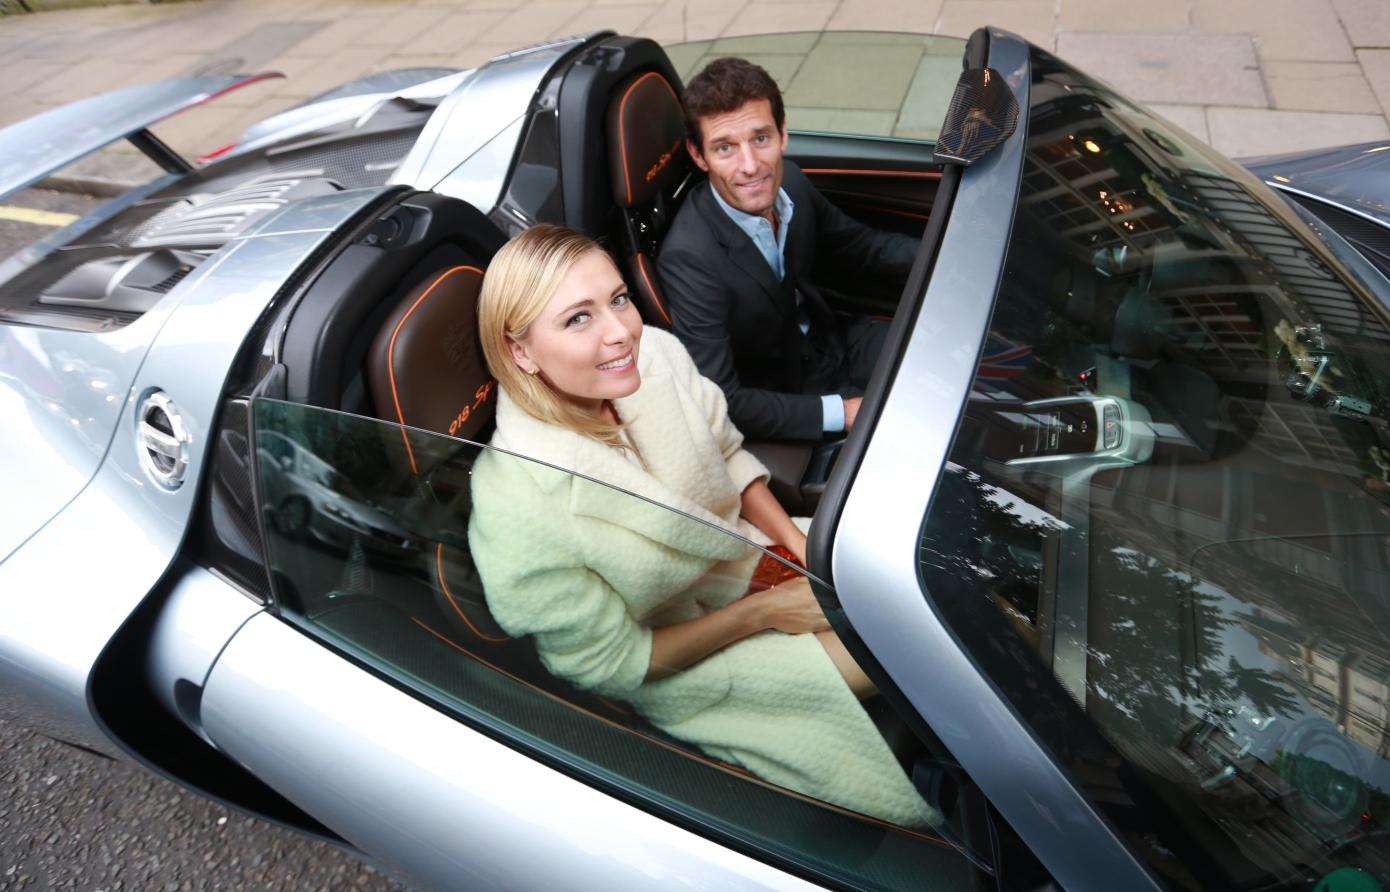 Maria_Sharapova_and_Mark_Webber_drive_away_in_electric_mode_in_the_Porsche_918_Spyder